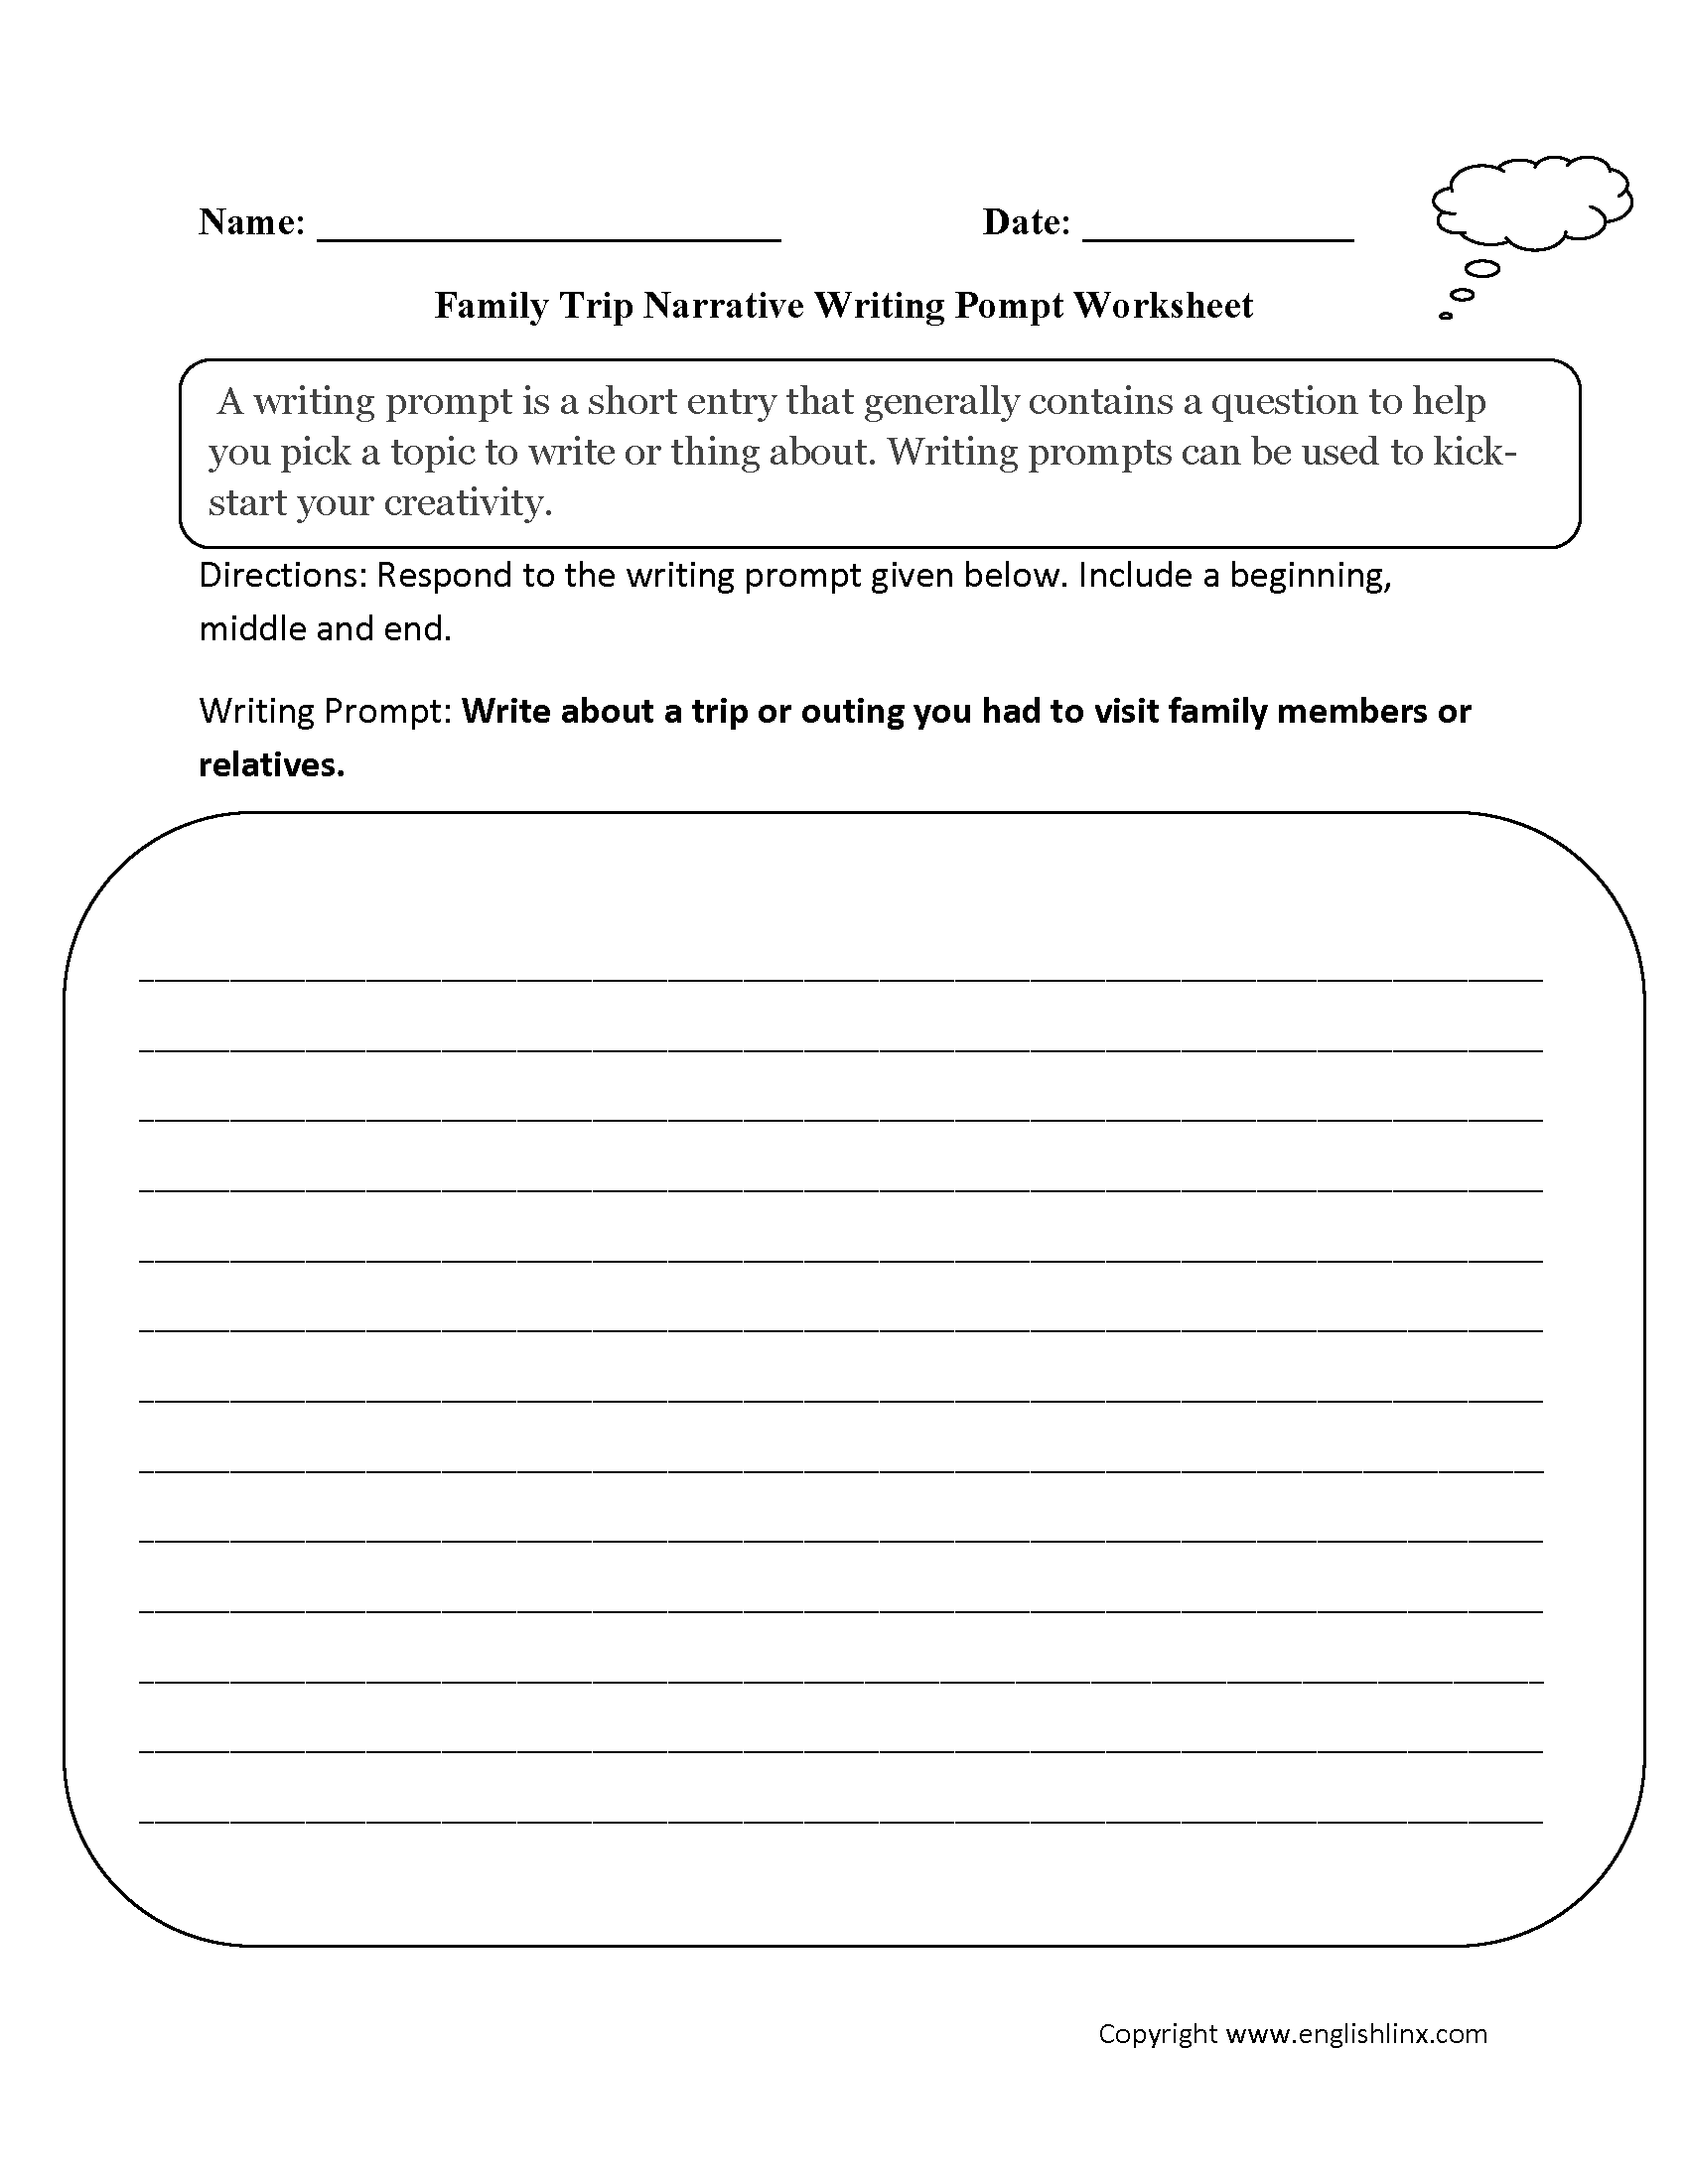 Worksheets 4th Grade Language Arts Worksheets englishlinx com writing prompts worksheets worksheets